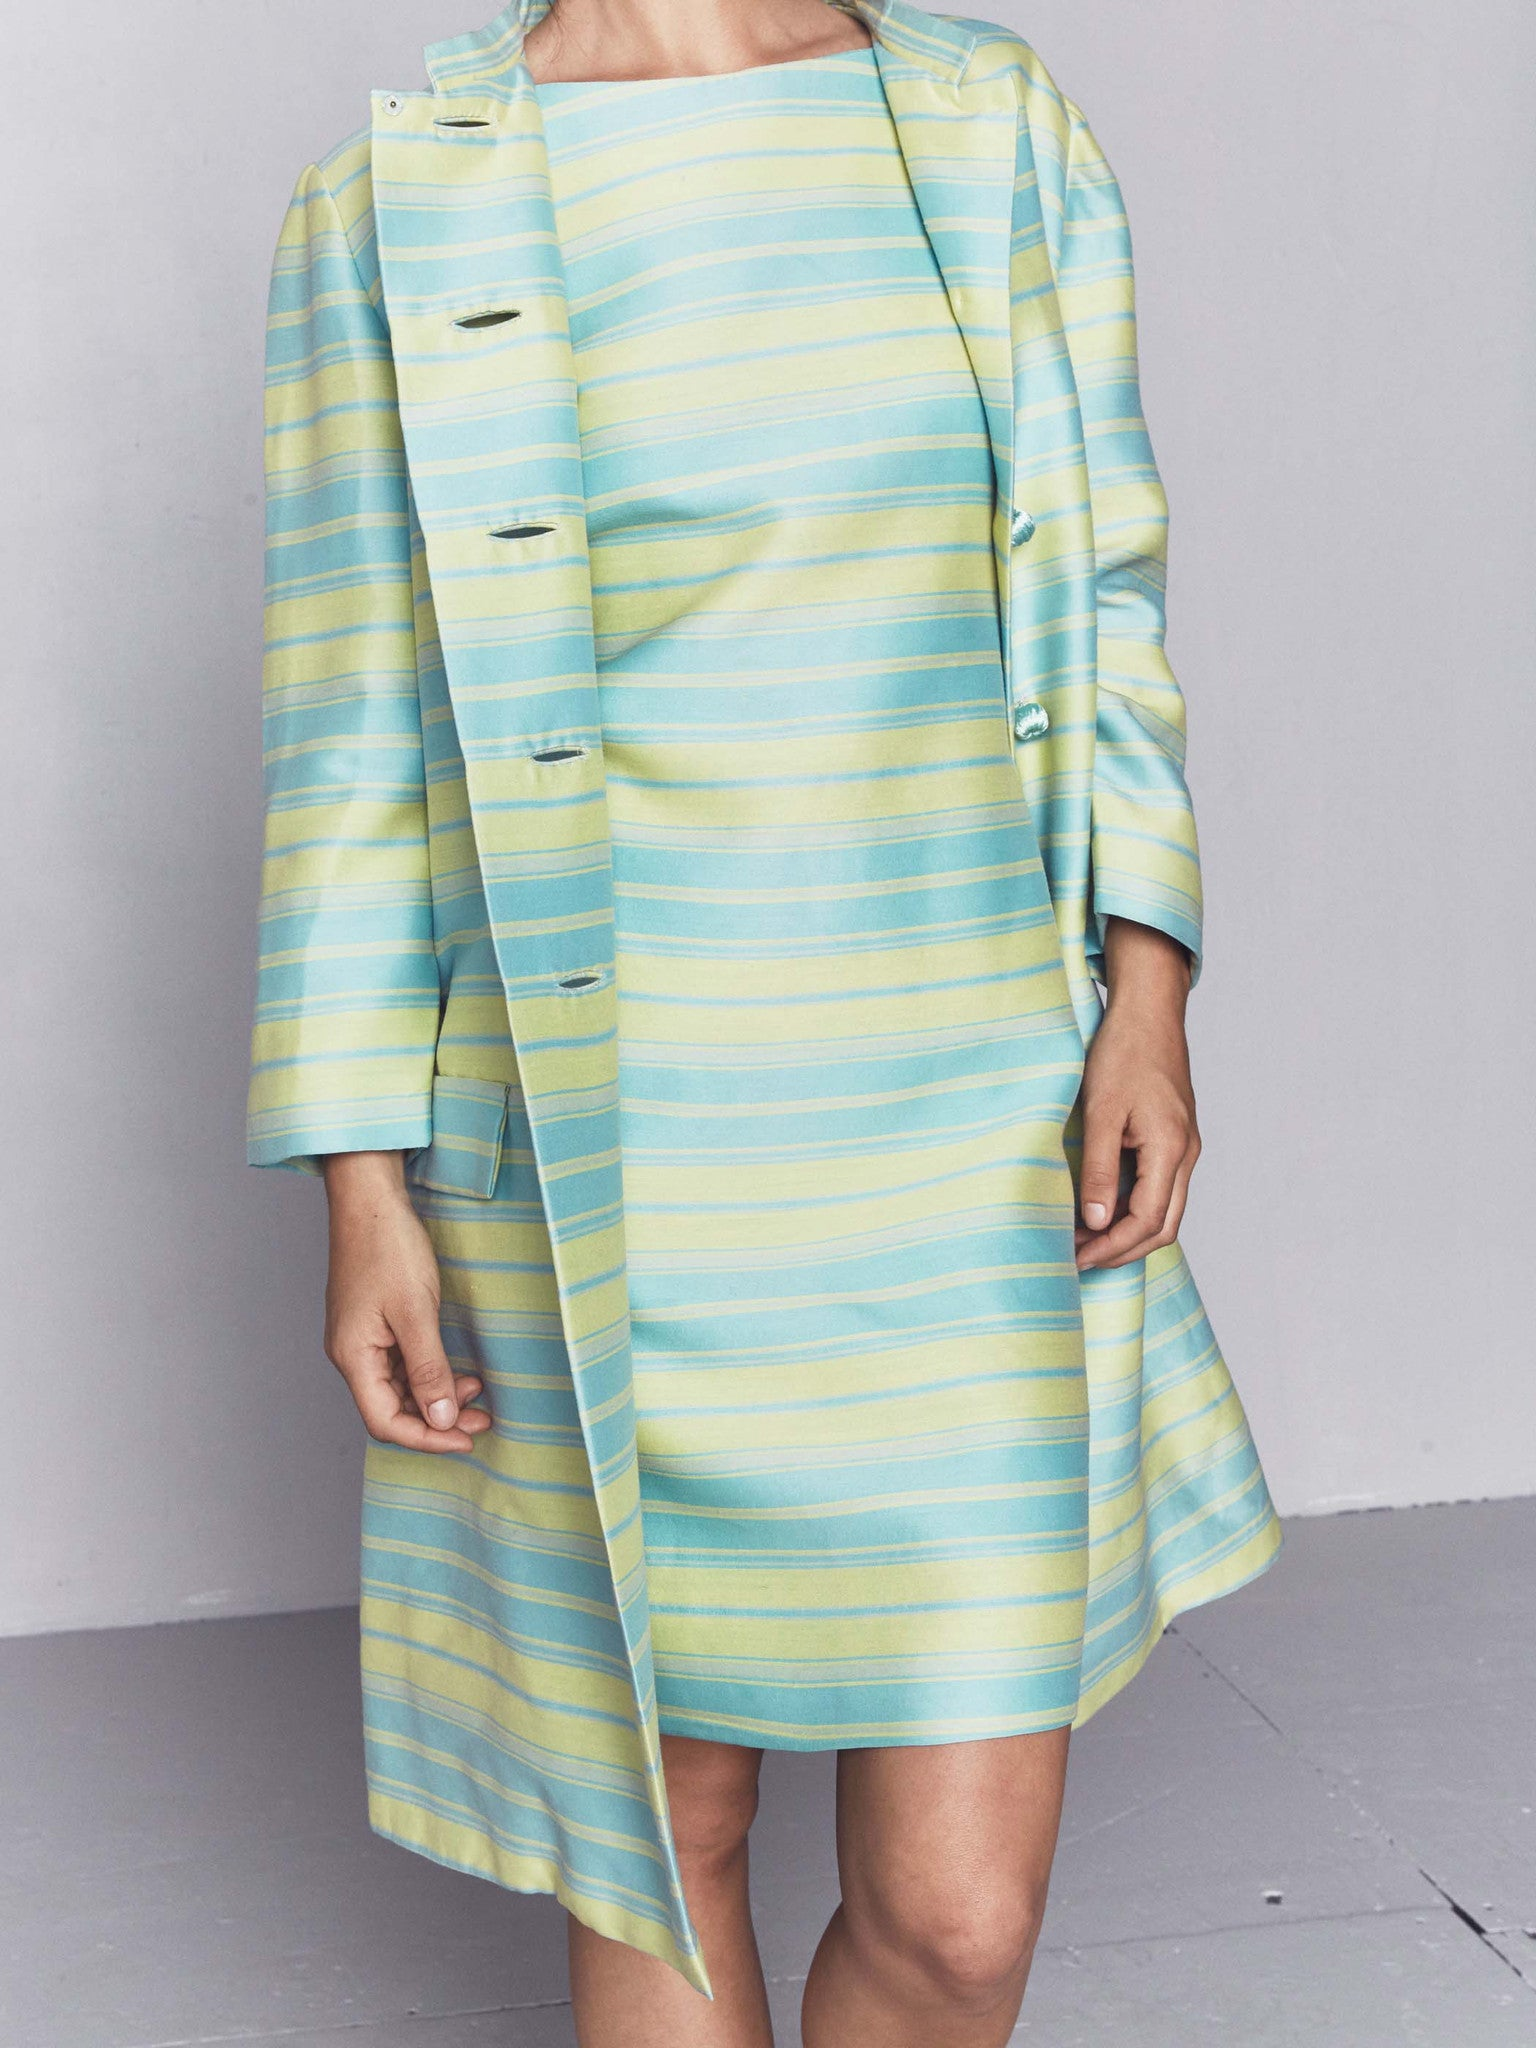 988e0ad02d Vintage 1960s Pastel Stripe Cocktail Dress and Matching Coat – Seeline  Vintage